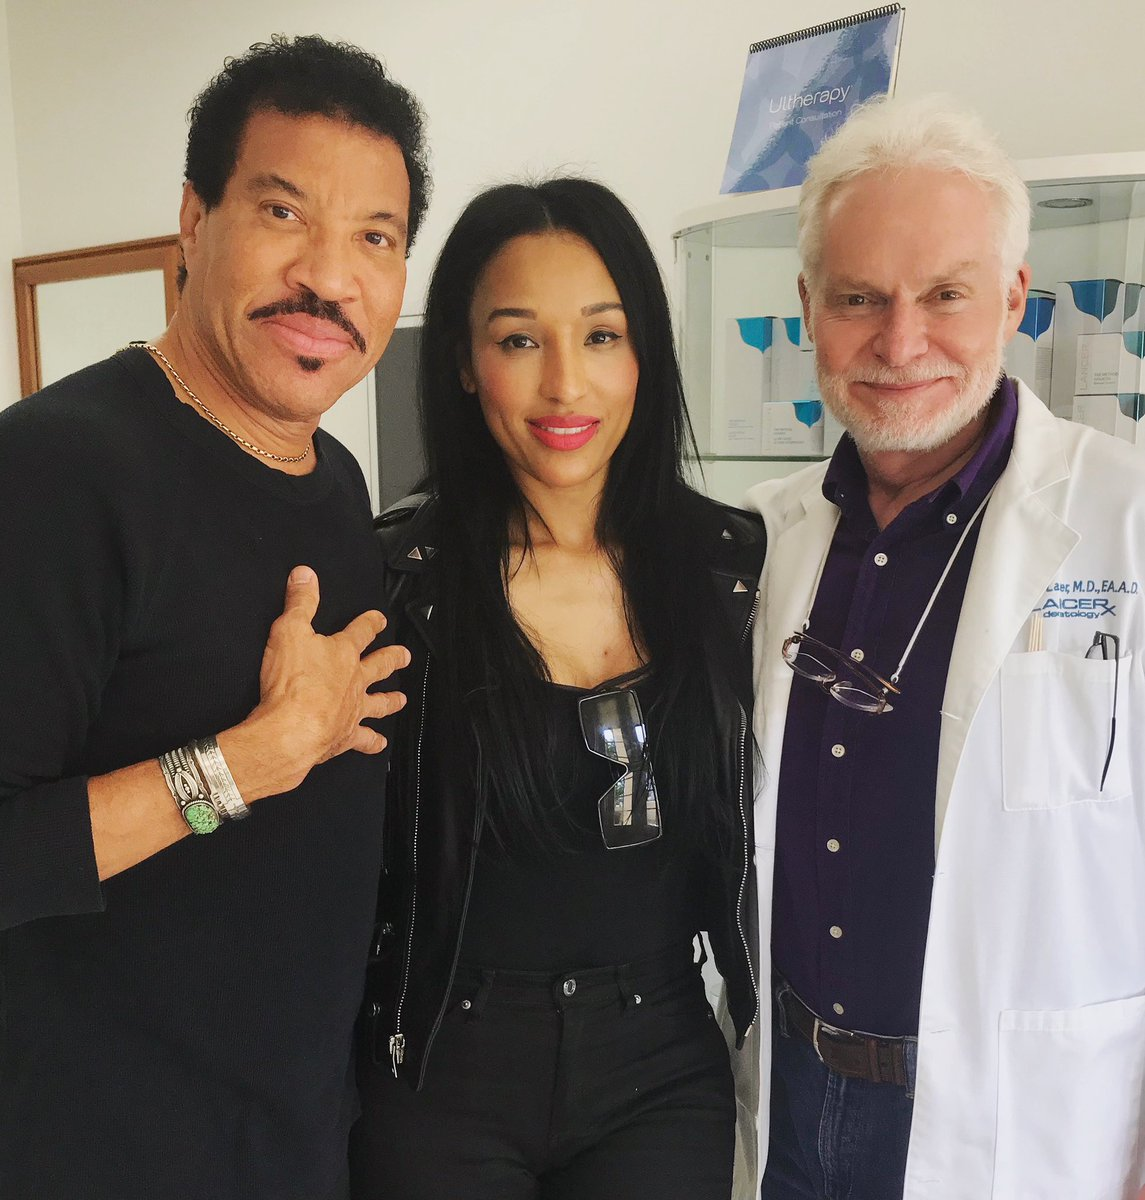 Wishing our dear friend @LionelRichie the best of luck with his #HelloTour🎤 #LancerGlow https://t.co/jiUXuNmnl8 https://t.co/0UPCRDCJ0X